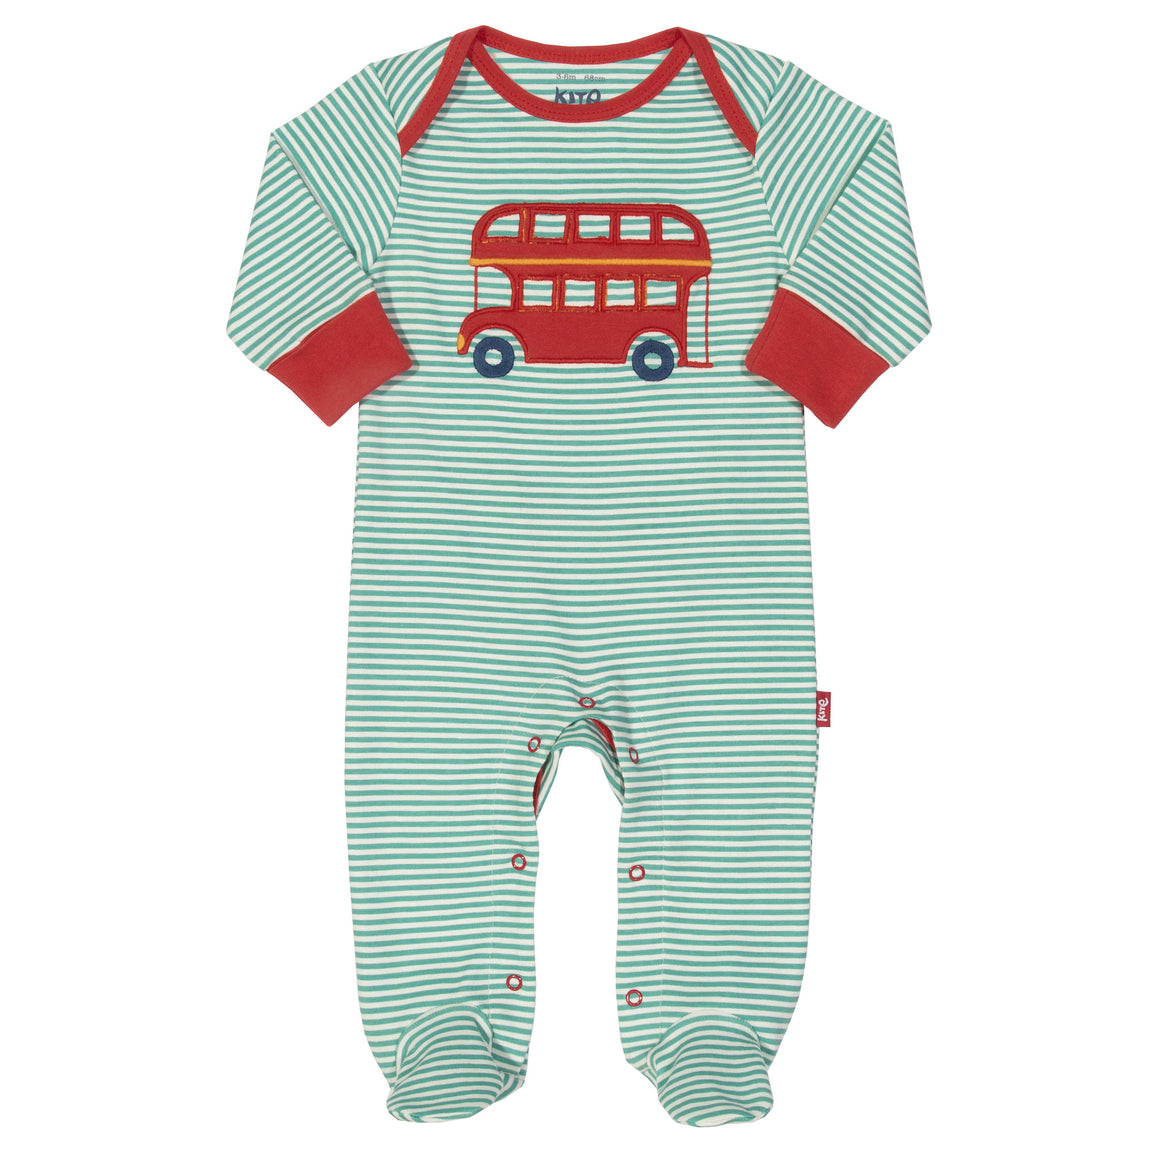 Stripy bus sleepsuit